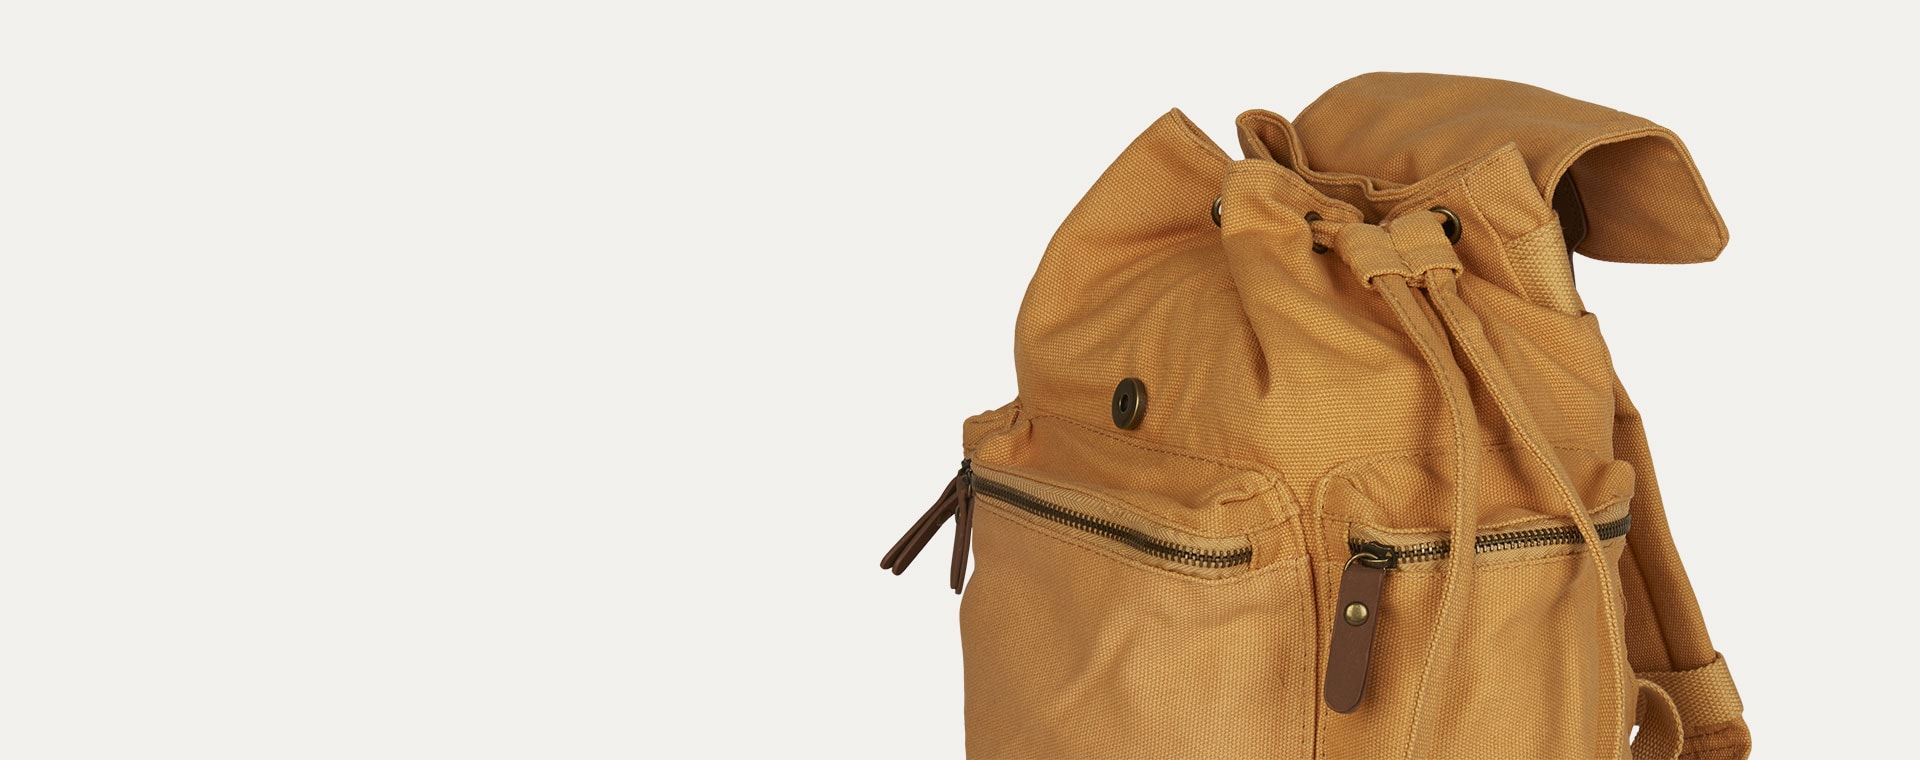 Honey Mustard Sebra Backpack